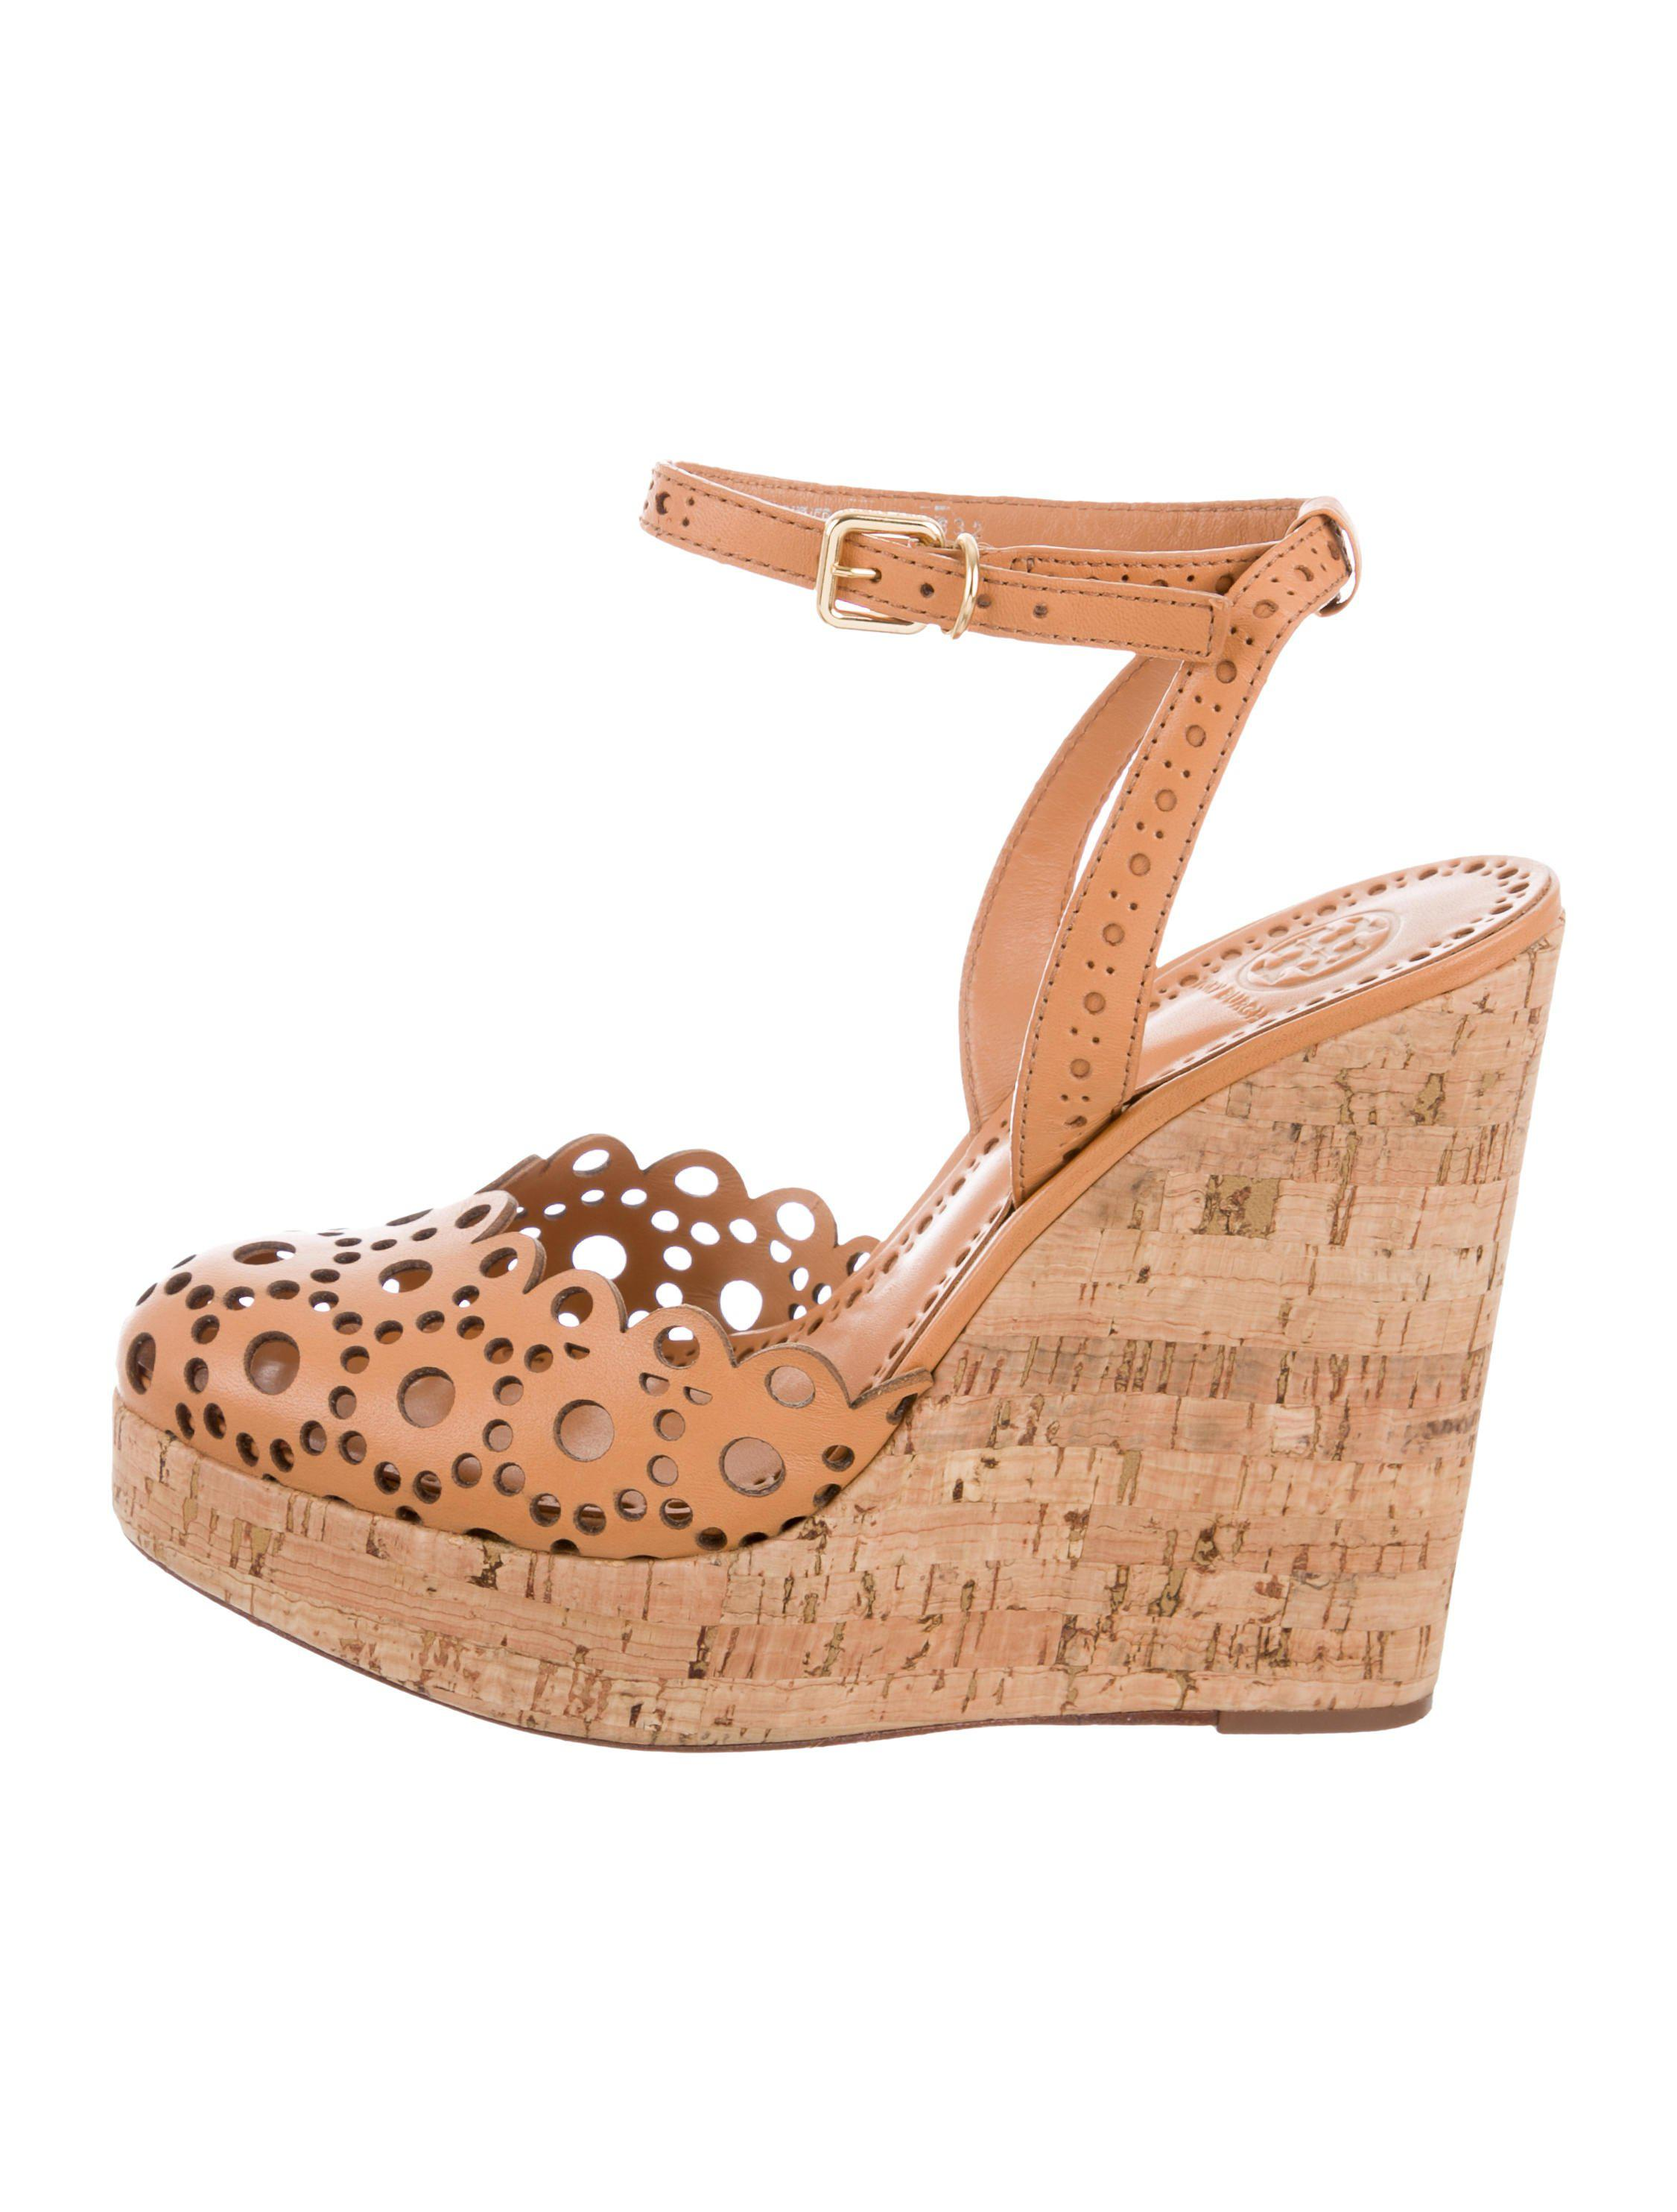 af33fd30616 Lyst - Tory Burch Leather Wedge Sandals in Brown